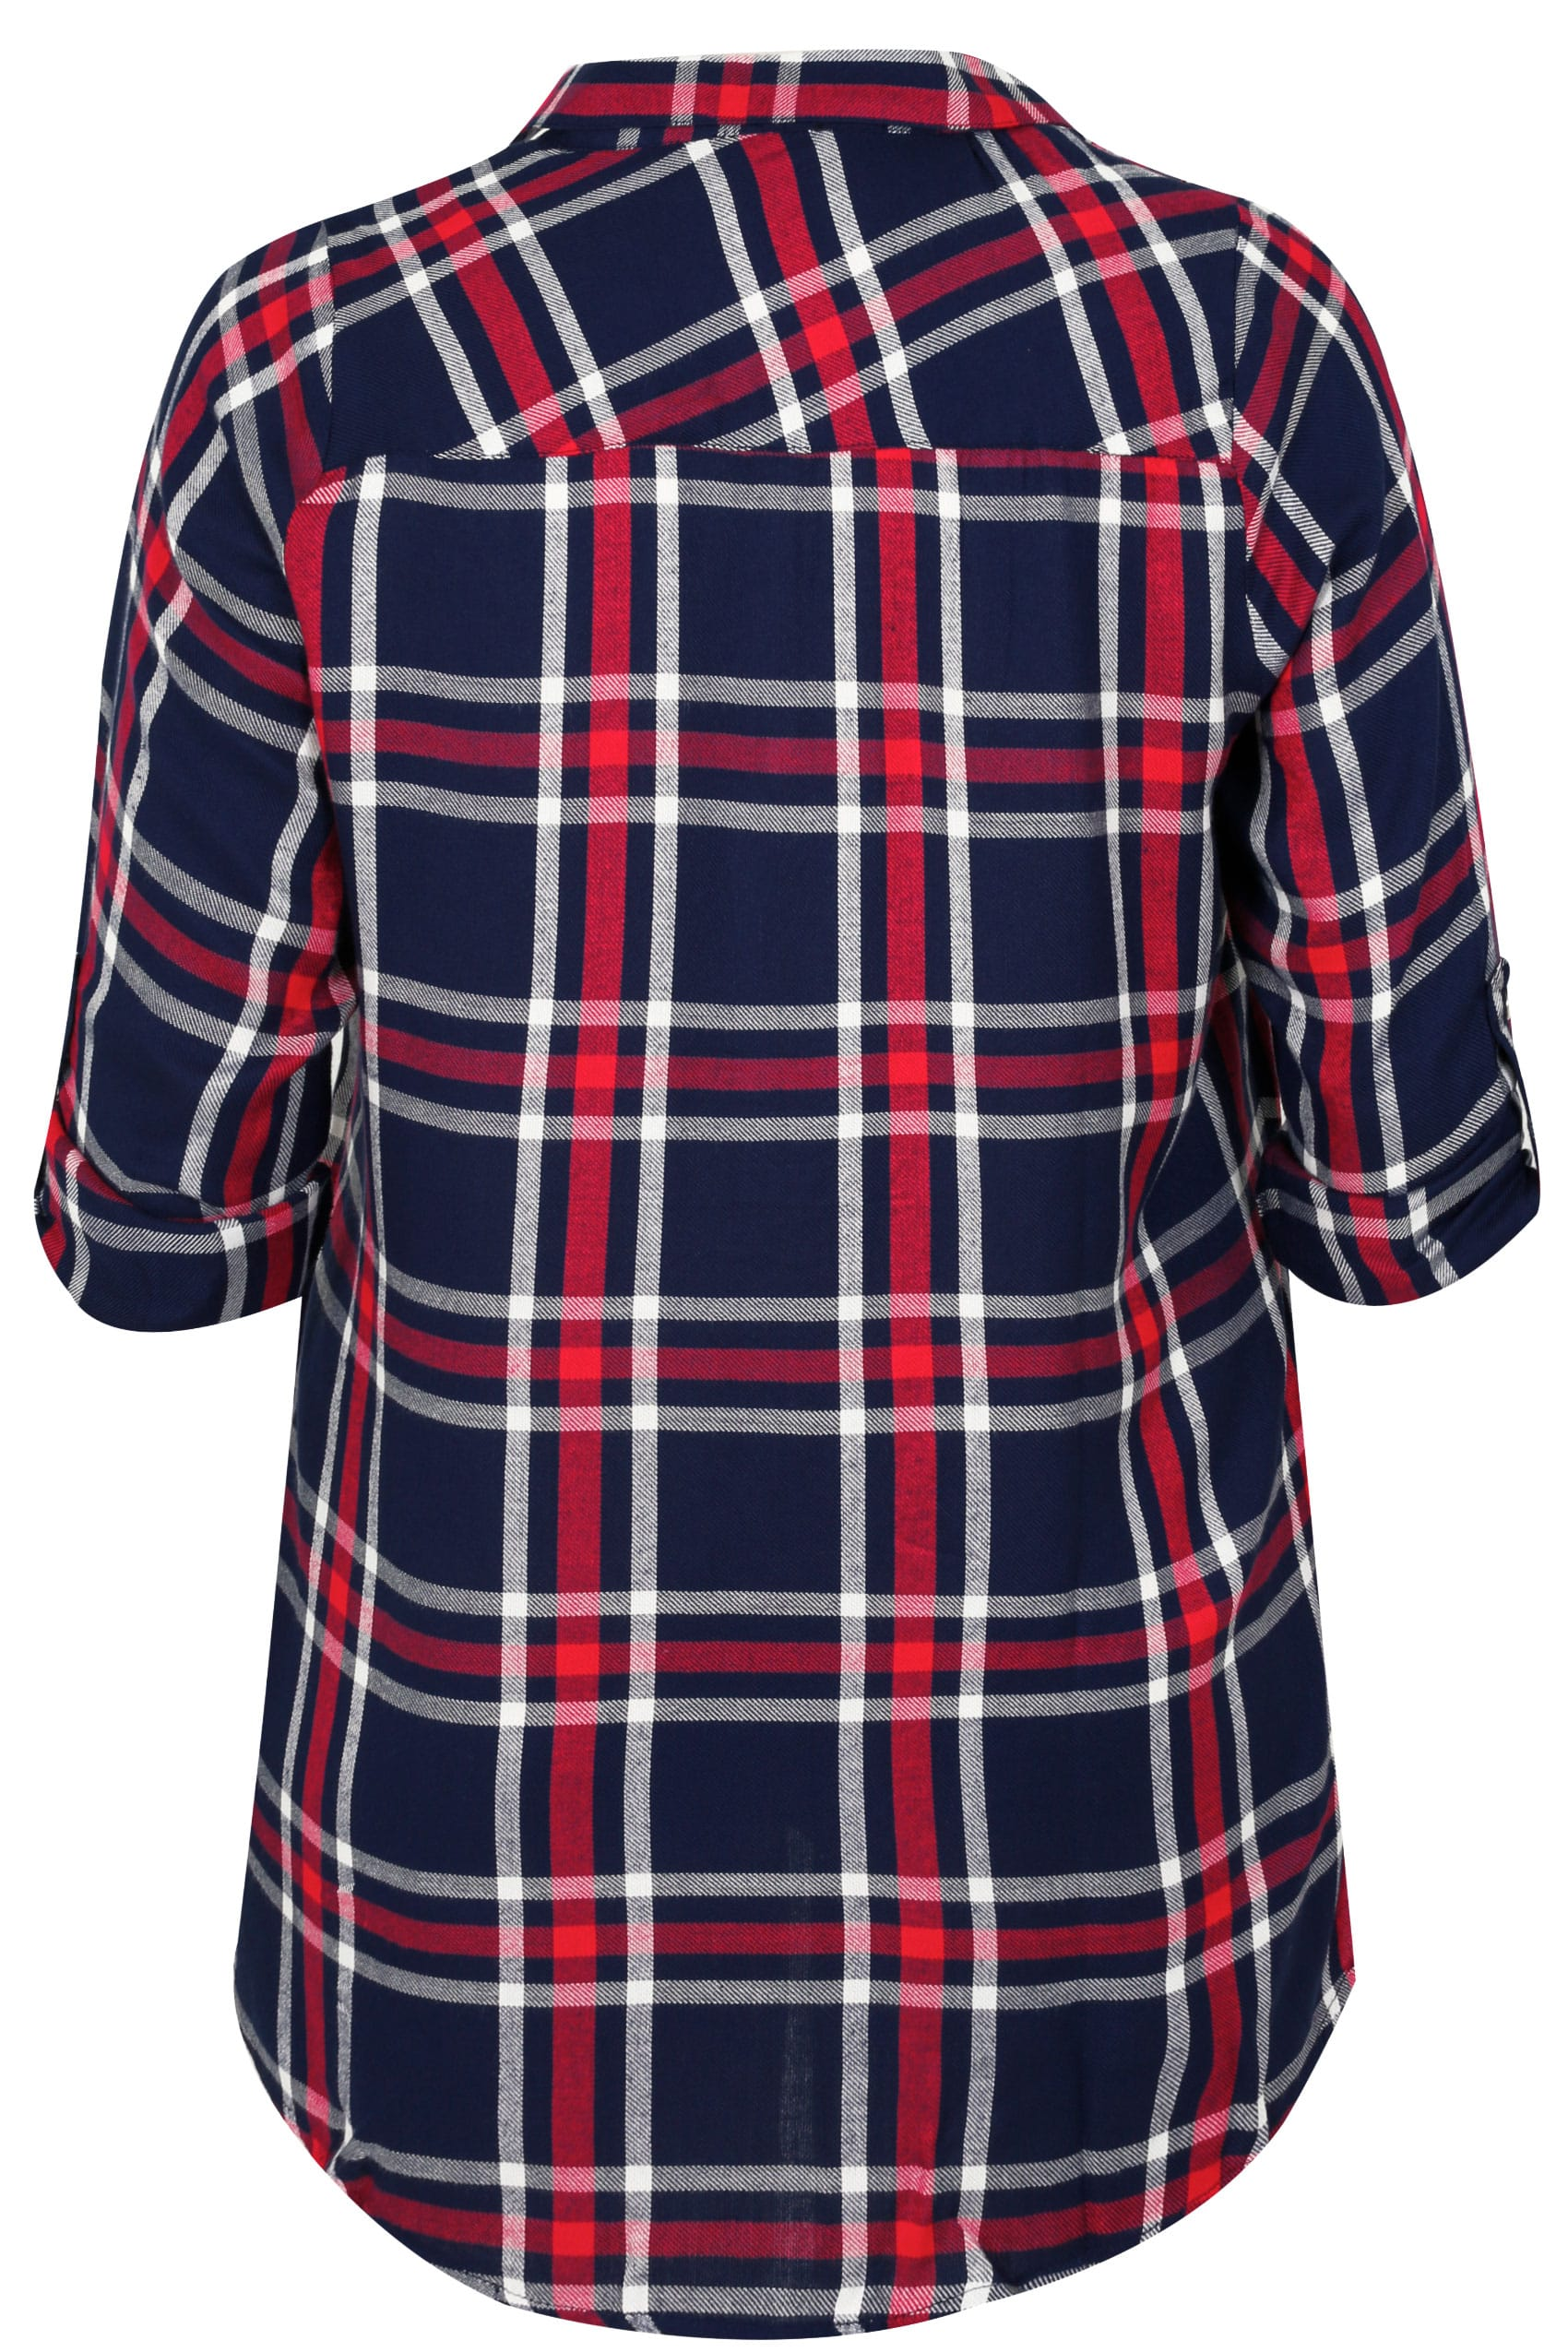 Httpswww Classes Redcross Orgsabawebmain: Navy, Red & White Faux Pearl Embellished Oversized Checked